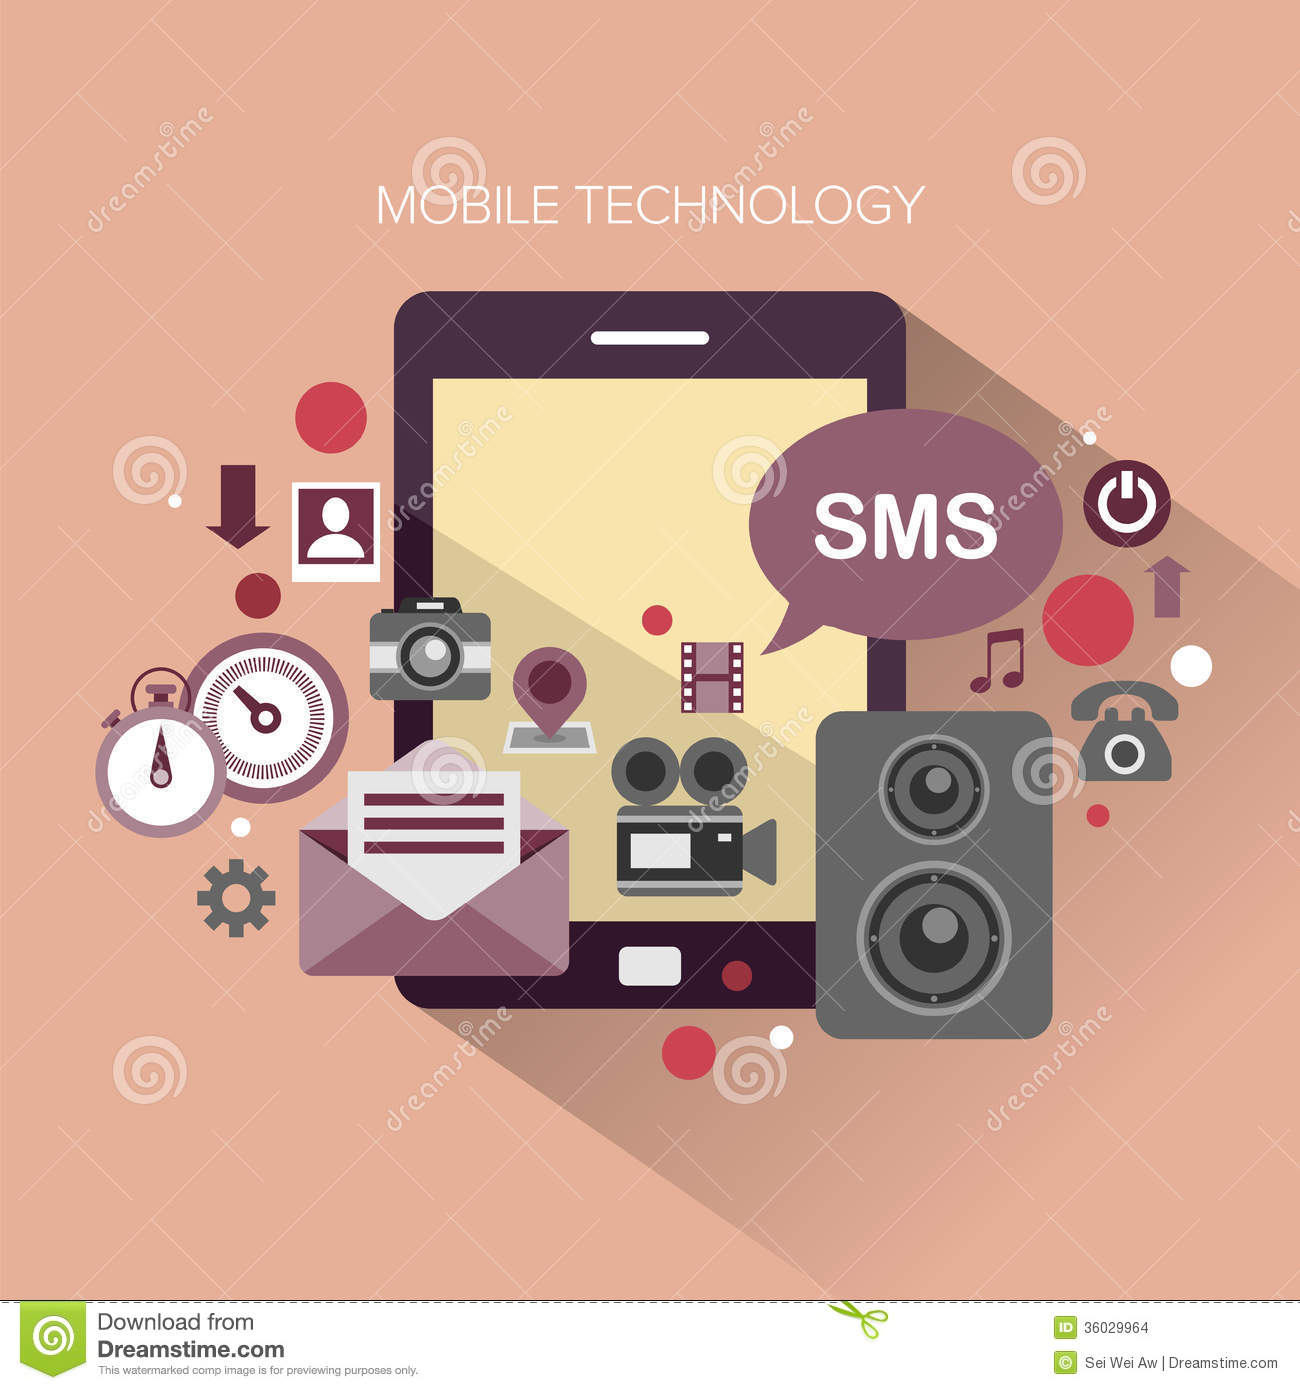 Mobile Technology: Mobile Technology Stock Vector. Illustration Of Interface